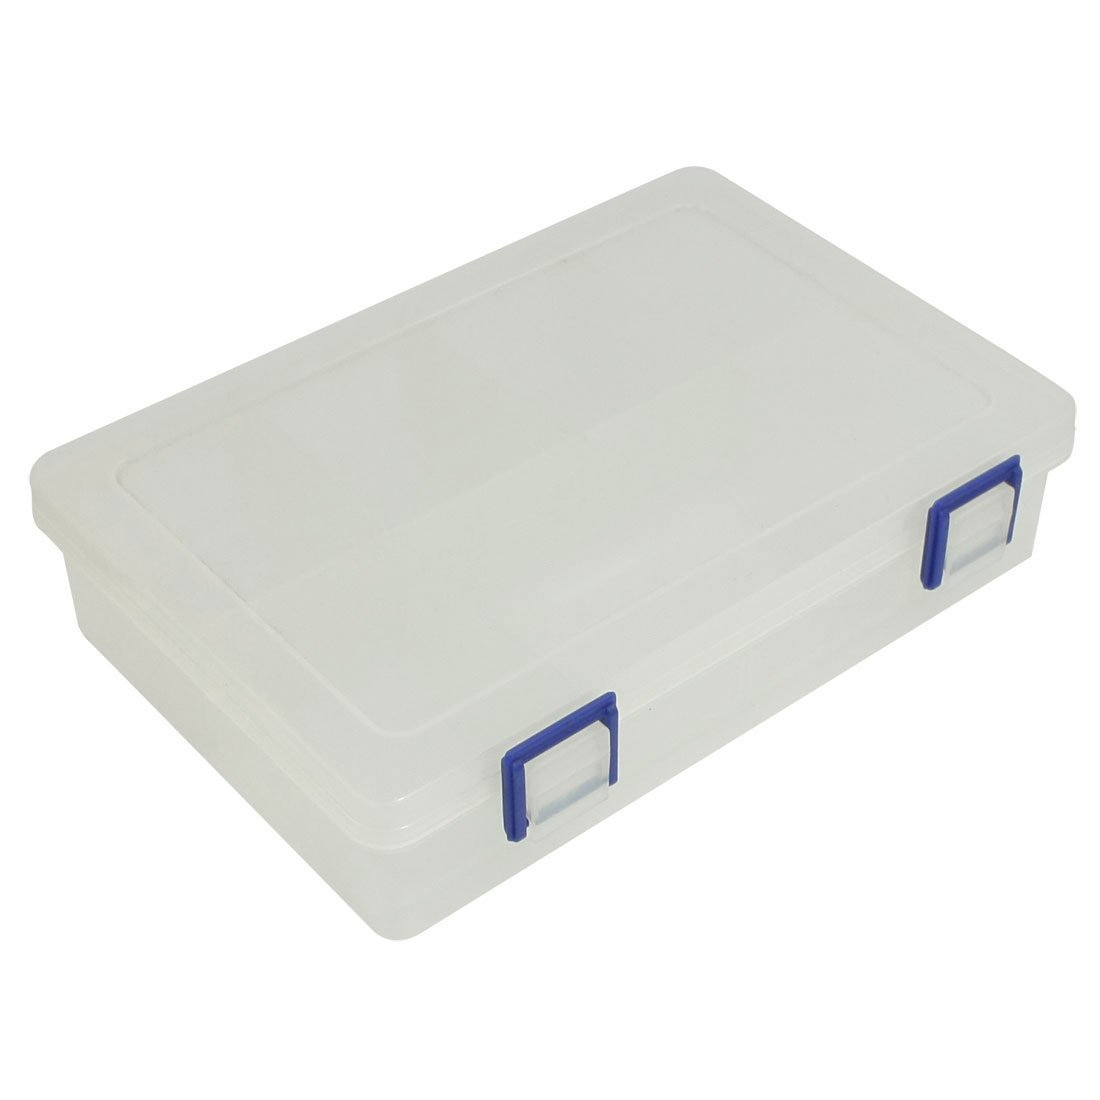 uxcell Plastic 8 Compartments Electronic Component Storage Box Case Clear White